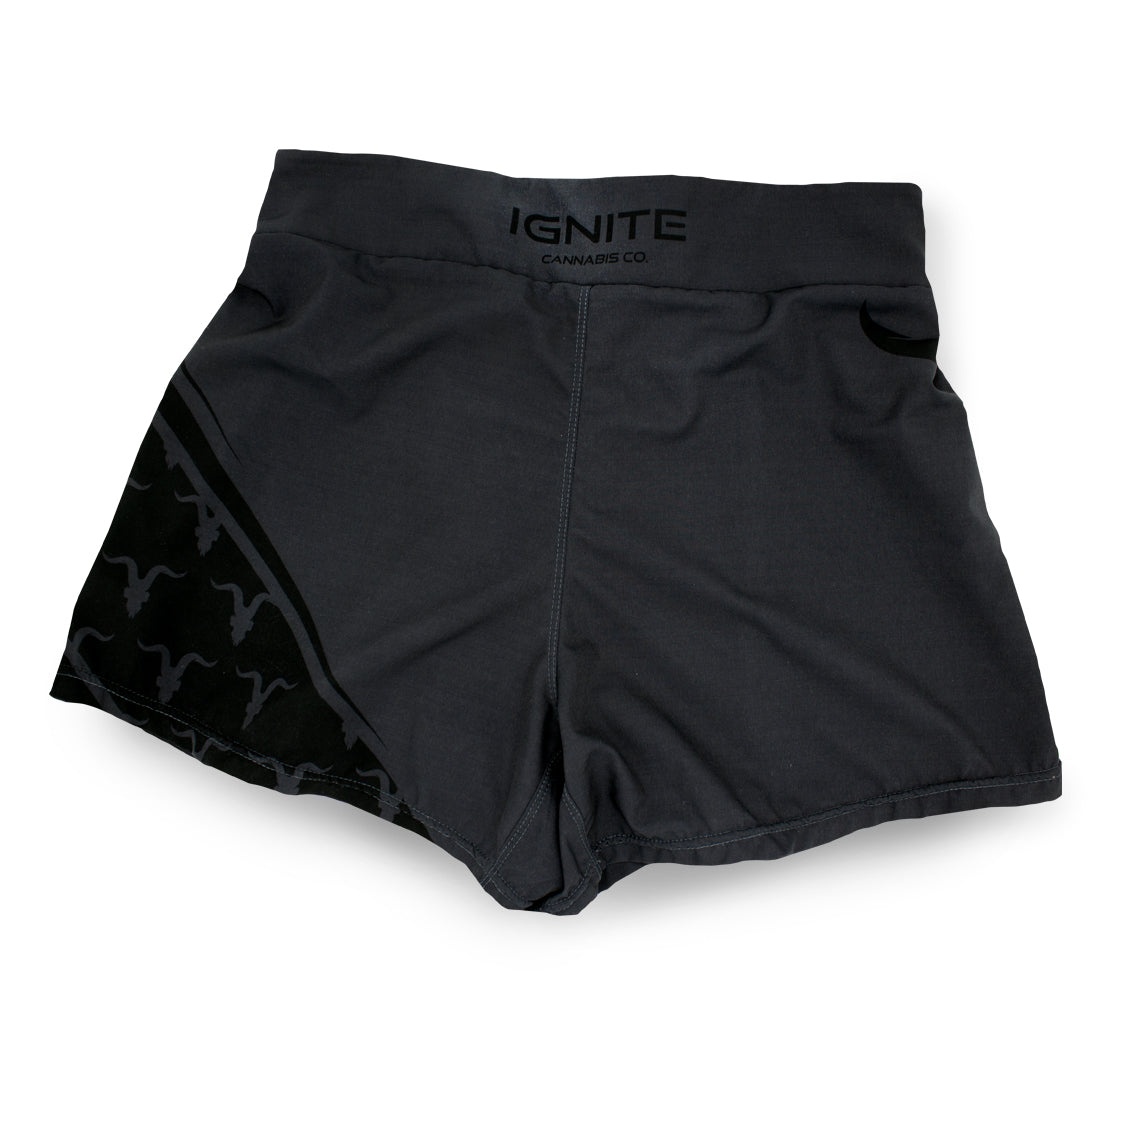 Ignite Premium Collection Grey Performance Workout Shorts - ignite-merch